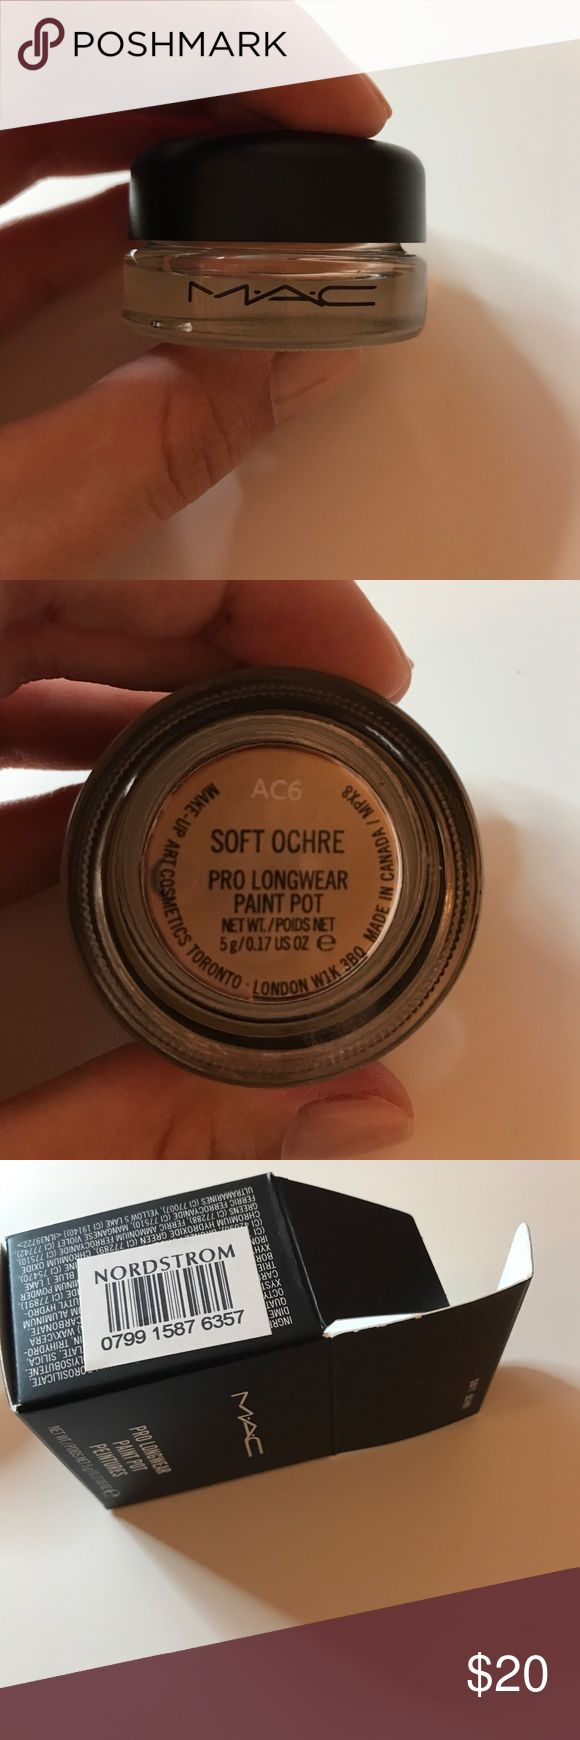 Mac paint pot soft ochre💕💕💕 Used once with a clean brush!! Authentic as seen in pictures!! MAC Cosmetics Makeup Eyeshadow